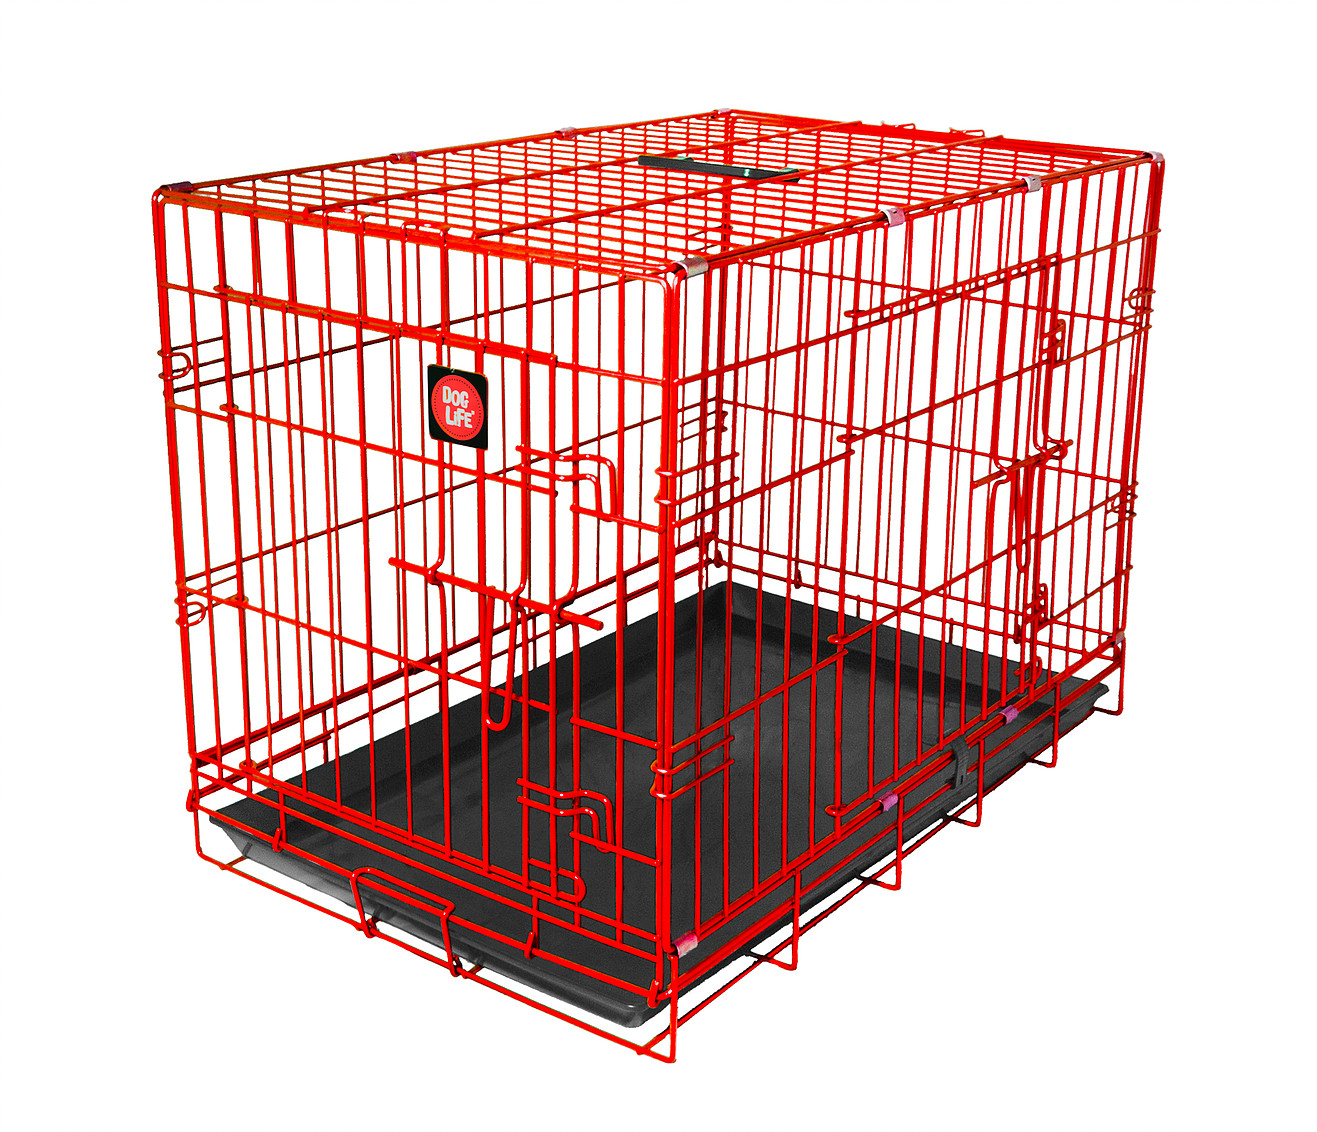 Red Dog Crate High-quality, durable, colour dog crate which is easy to clean and assemble. Available in a variety of sizes and colours, perfect for any dog